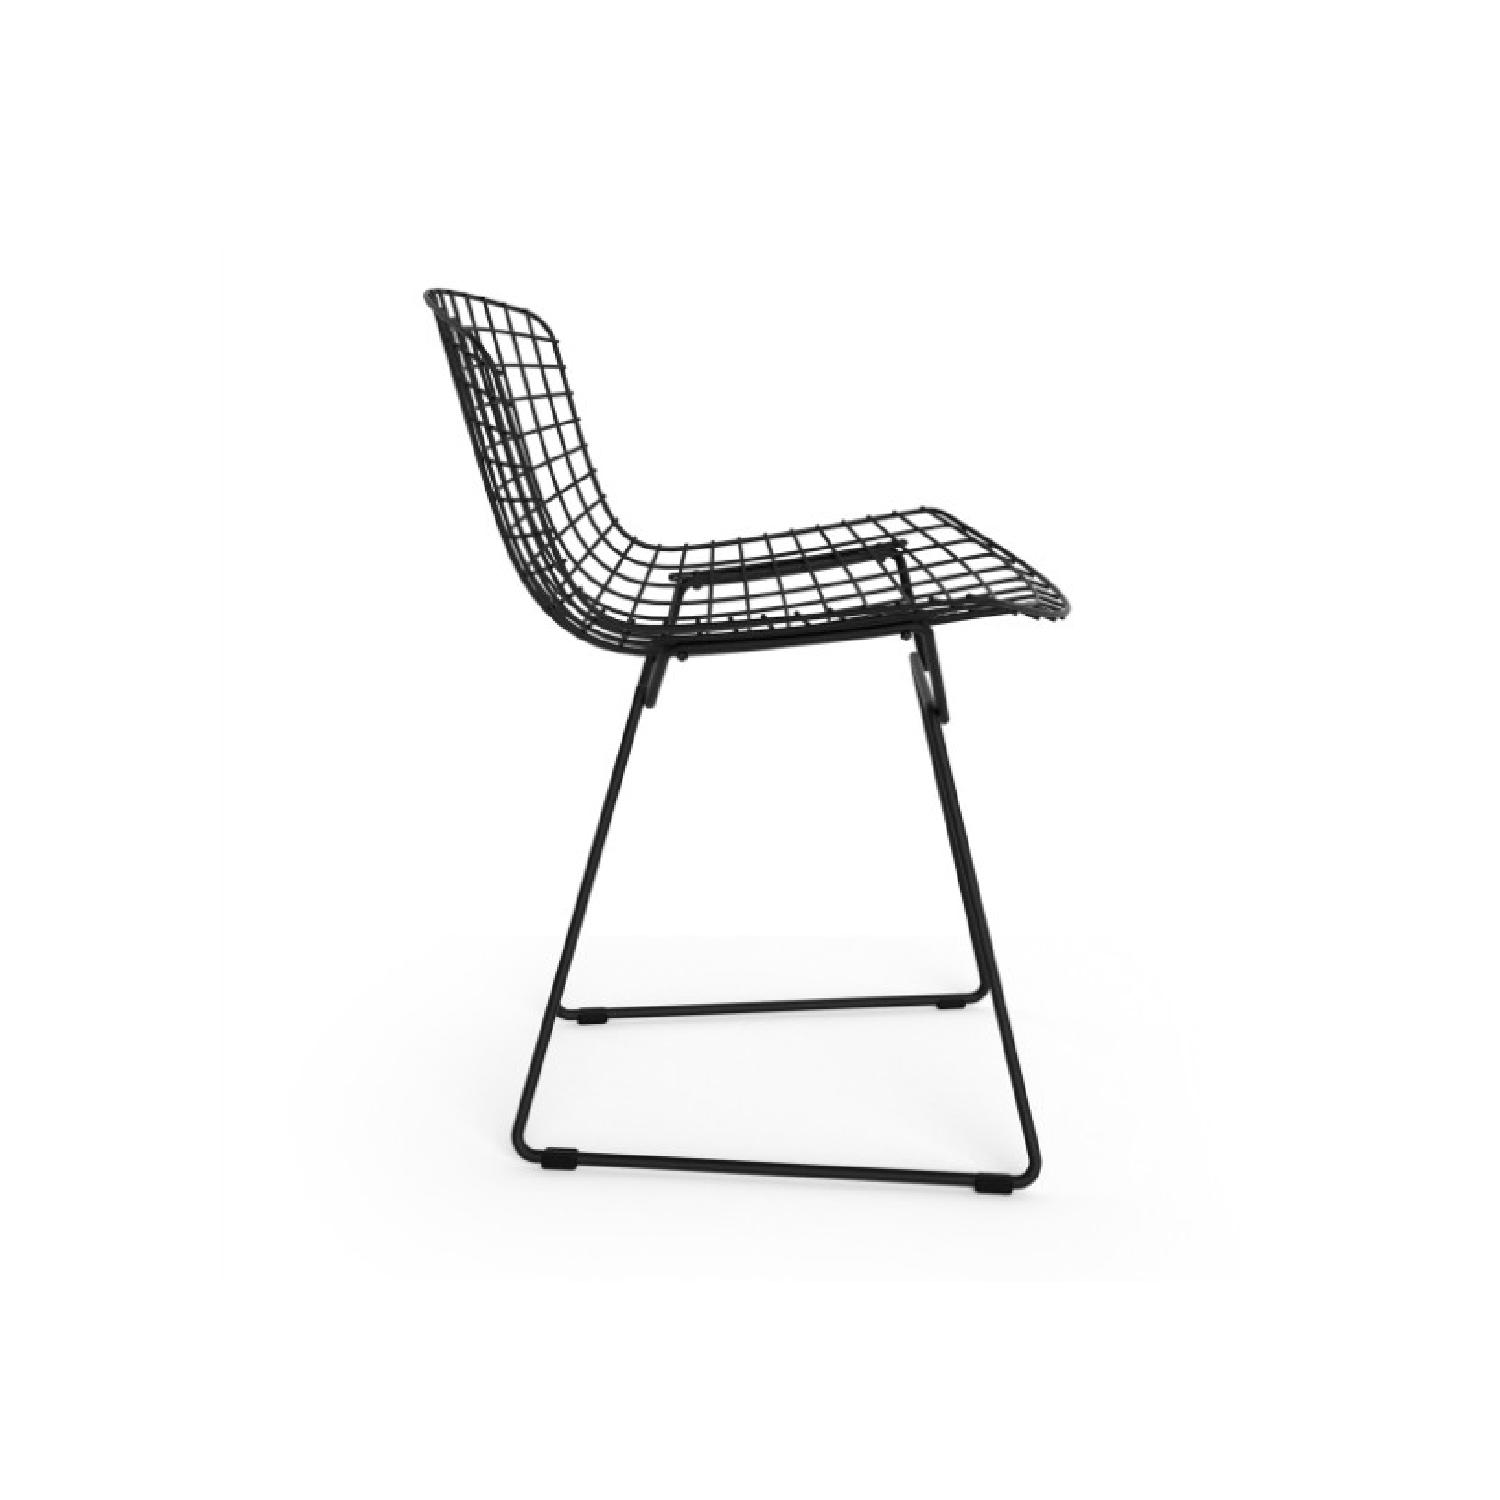 Inmod Harry Bertoia Style Side Chairs - image-5